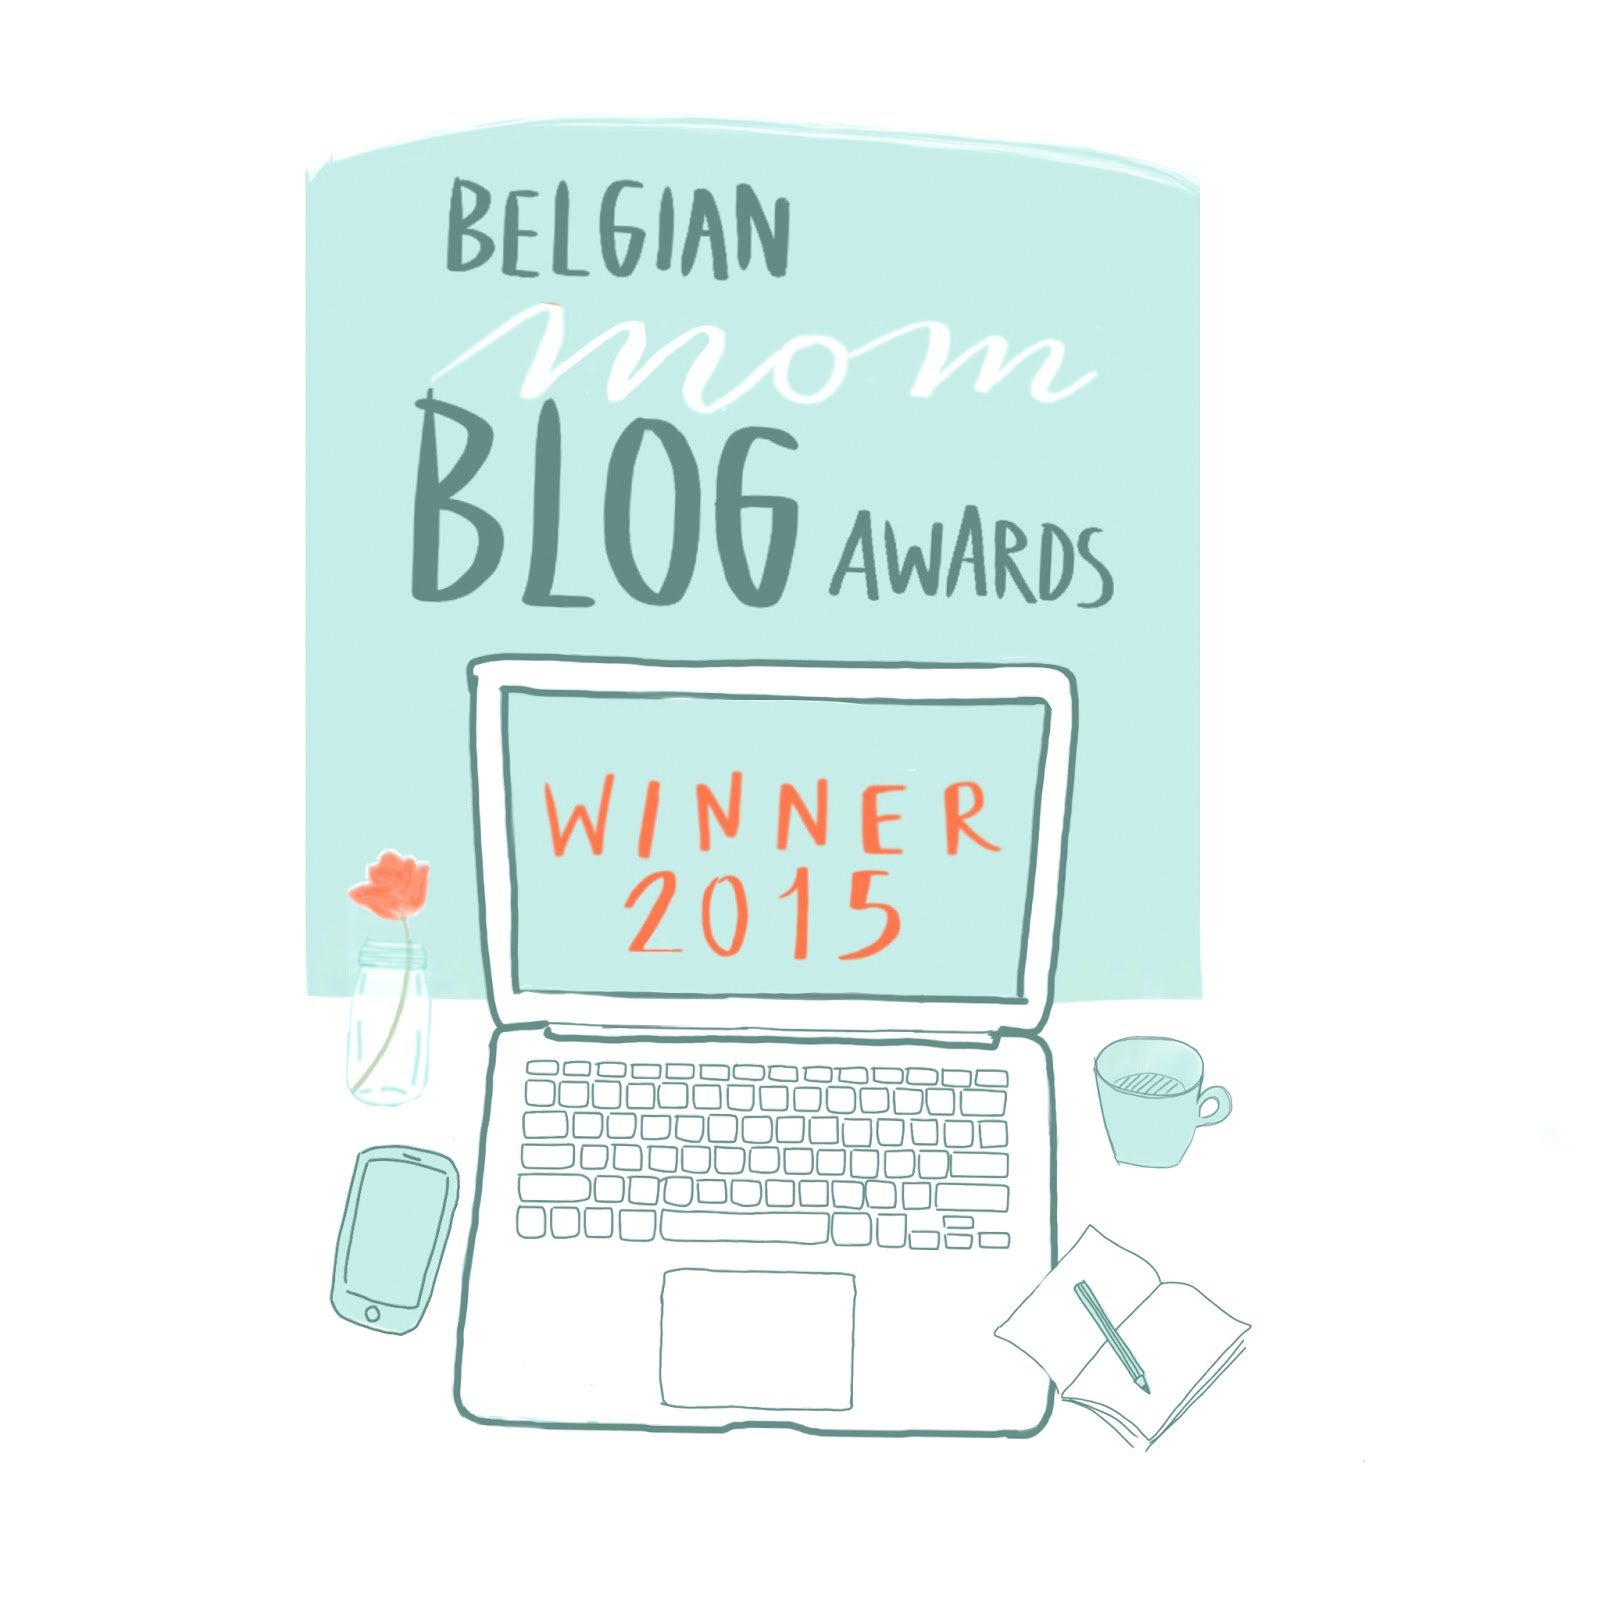 Belgian Mom Blog Award Winner